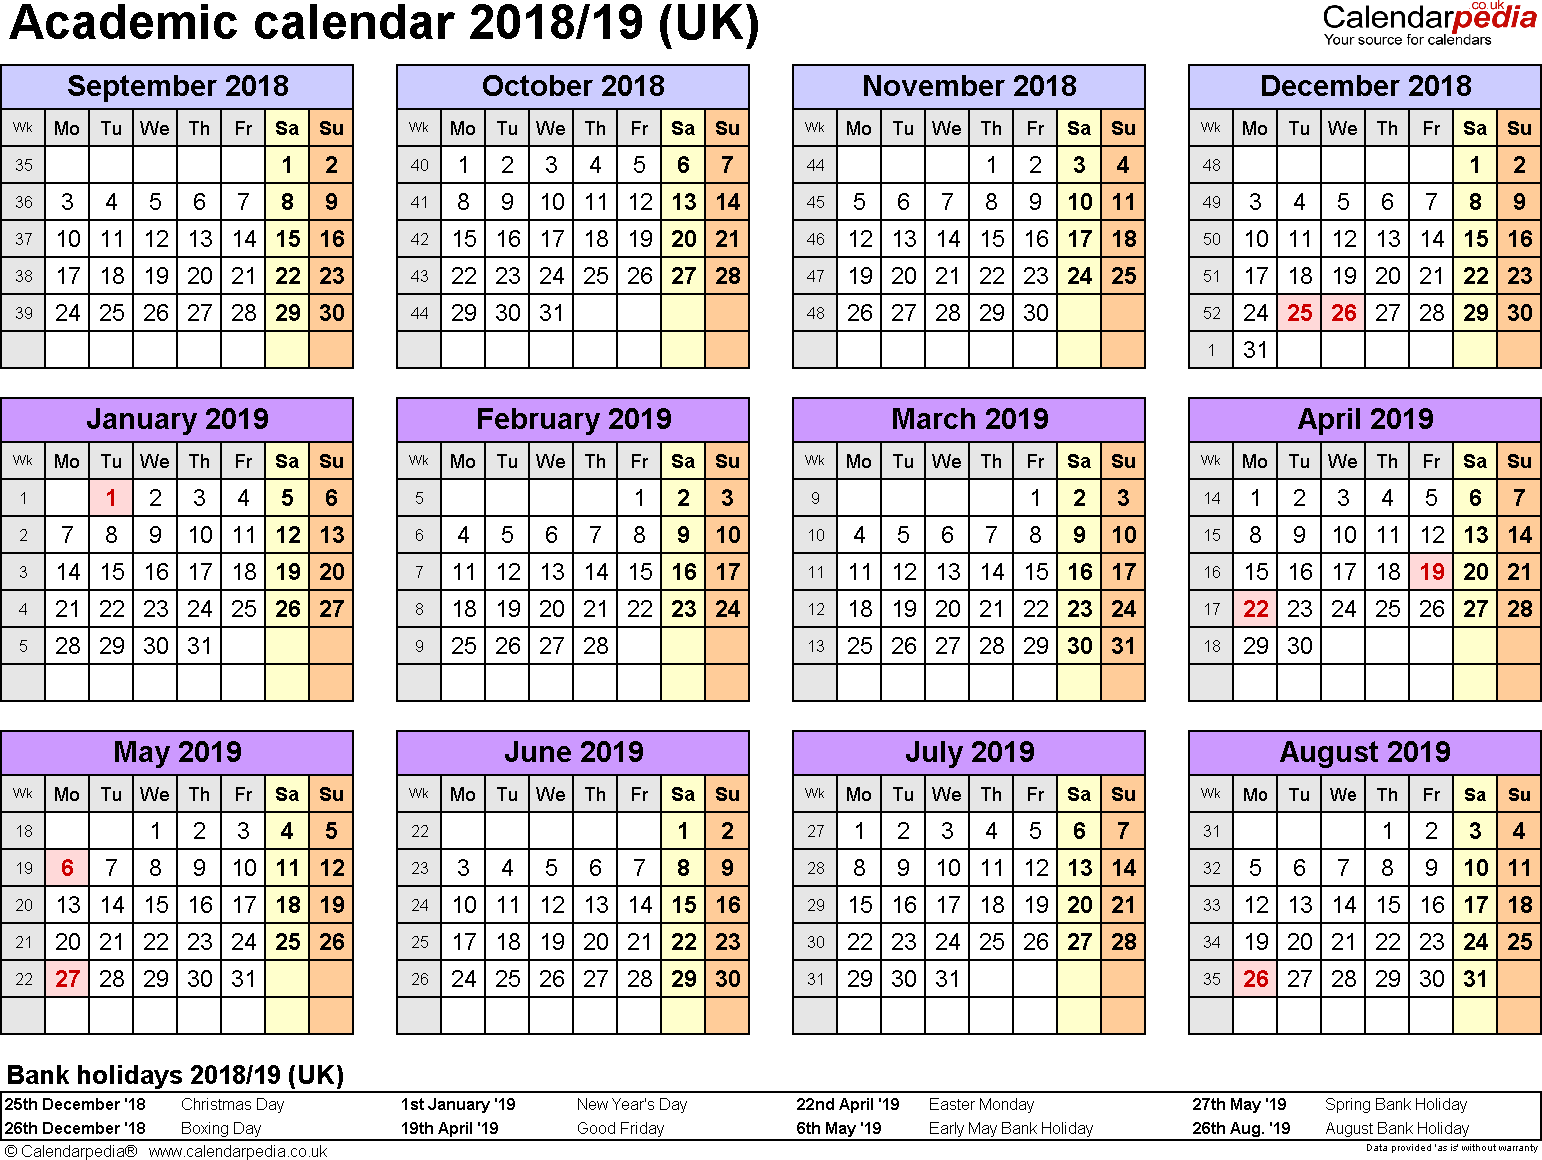 Download Template 4: Academic year calendars 2018/19 for Microsoft Word, year overview, 1 page